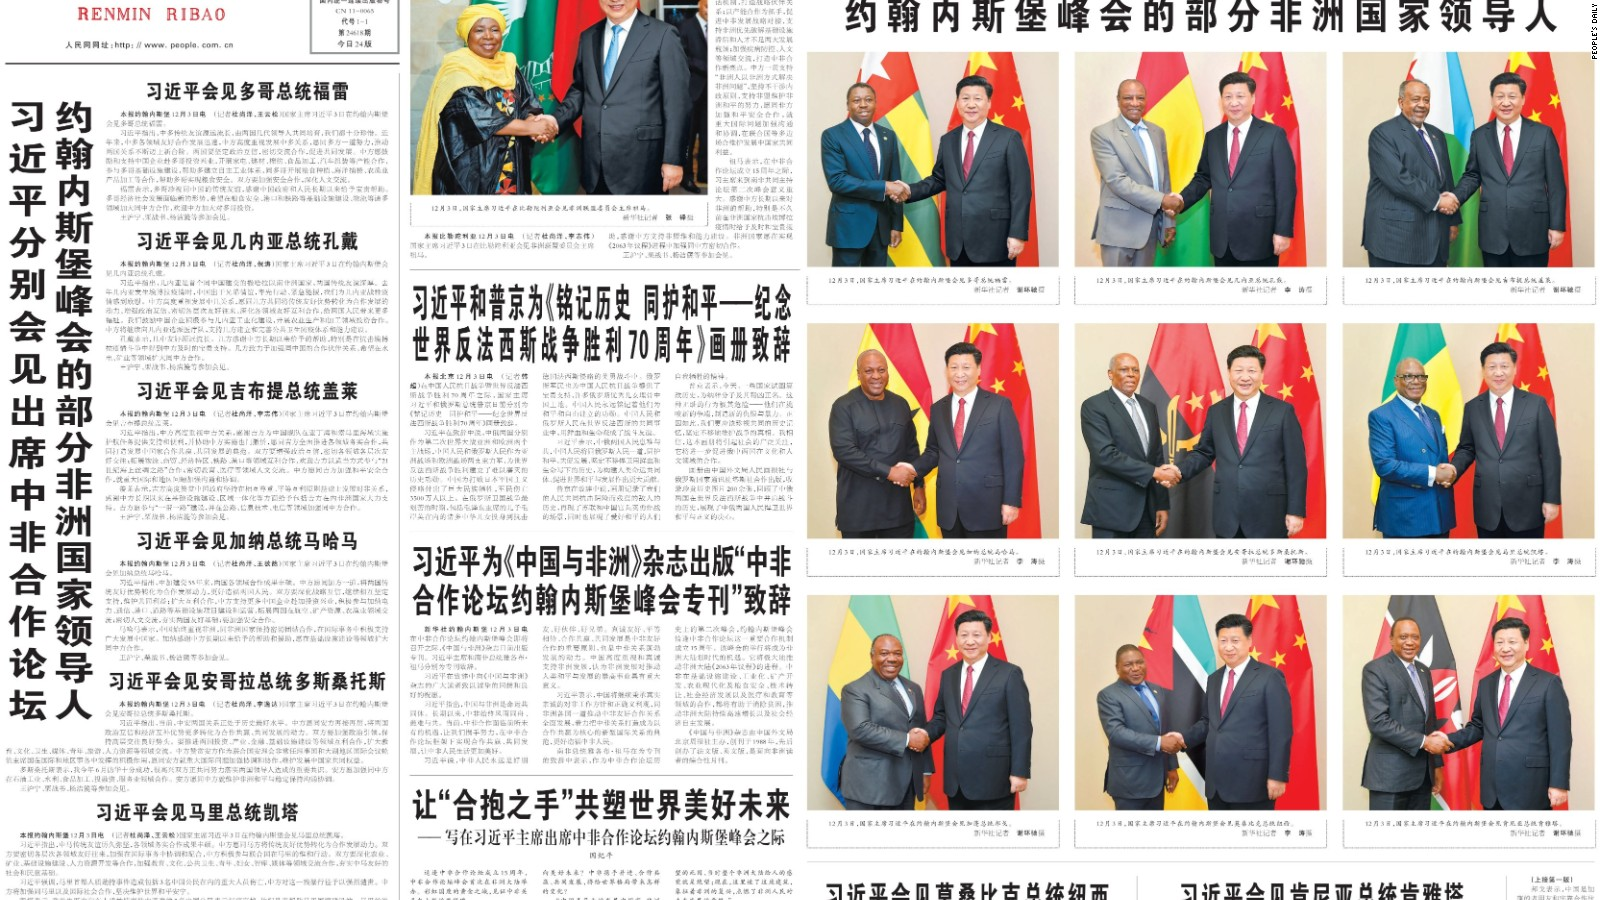 The December 4, 2015 front page of the People's Daily had 11 headlines mentioning Xi Jinping (习近平).